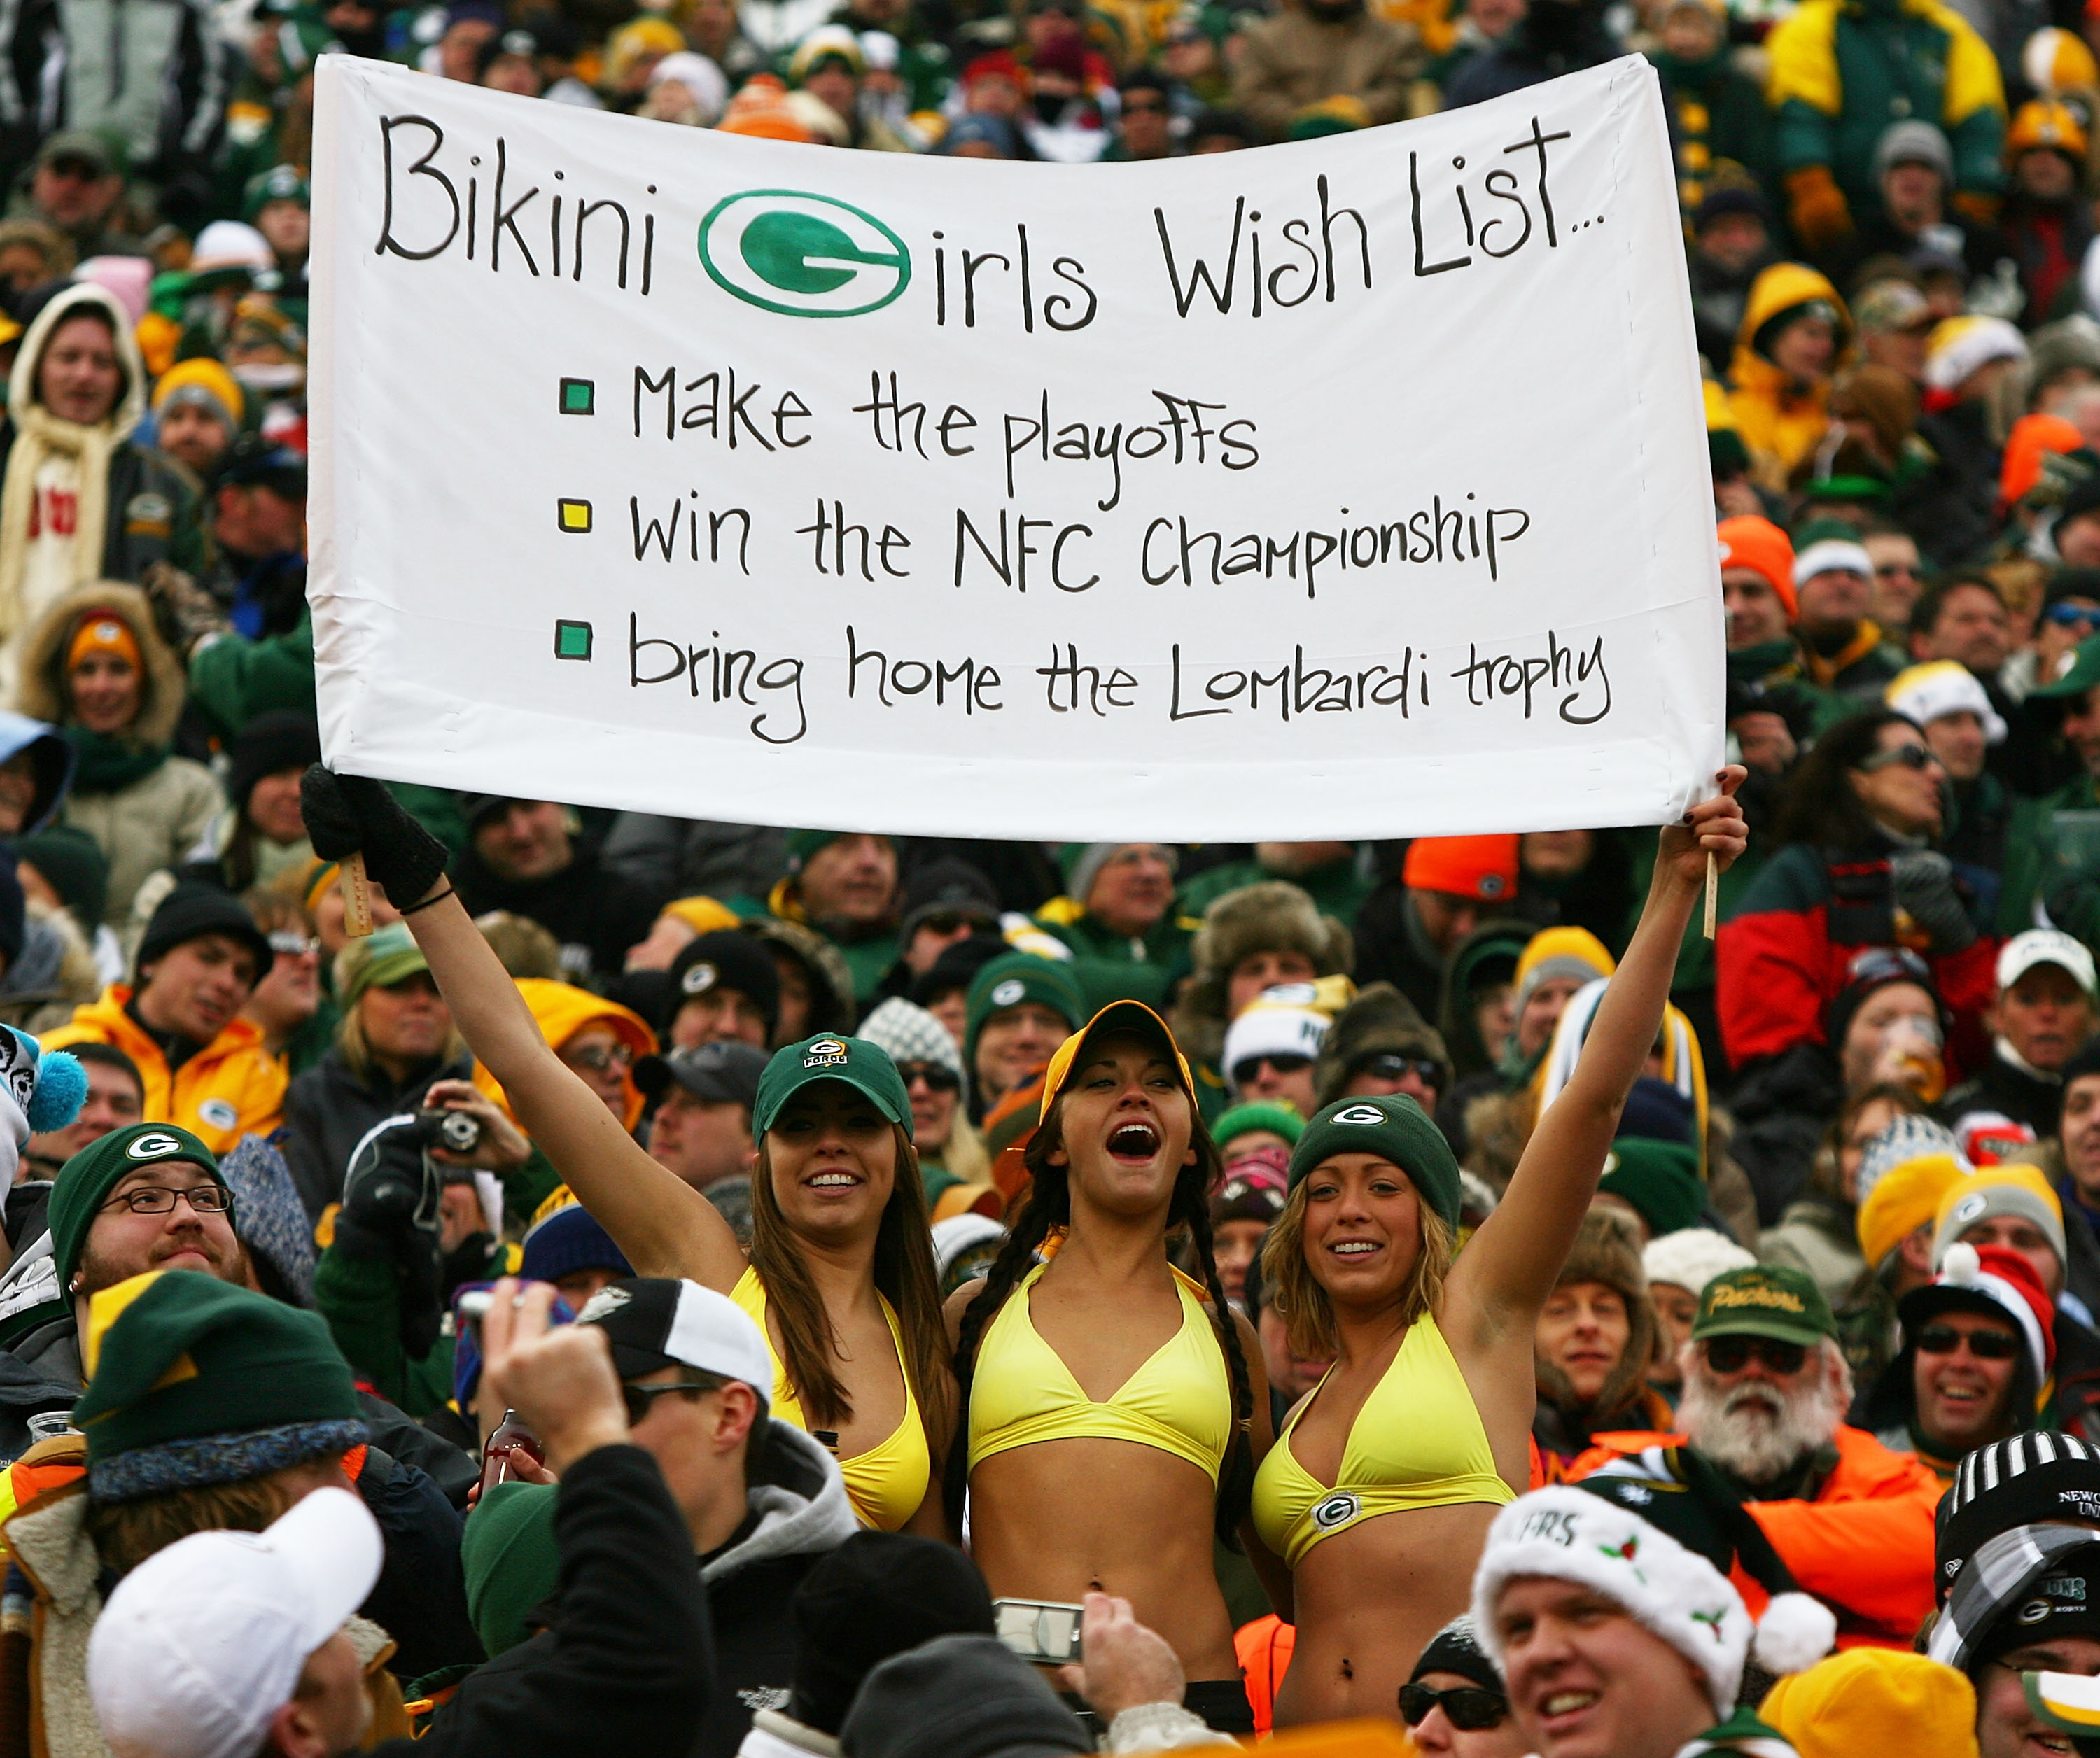 GREEN BAY, WI - DECEMBER 27: Fans of the Green Bay Packers hold a sign and wear bikini's in below freezing weather during a game between the Packers and the Seattle Seahawks at Lambeau Field on December 27, 2009 in Green Bay, Wisconsin. The Packers defeat